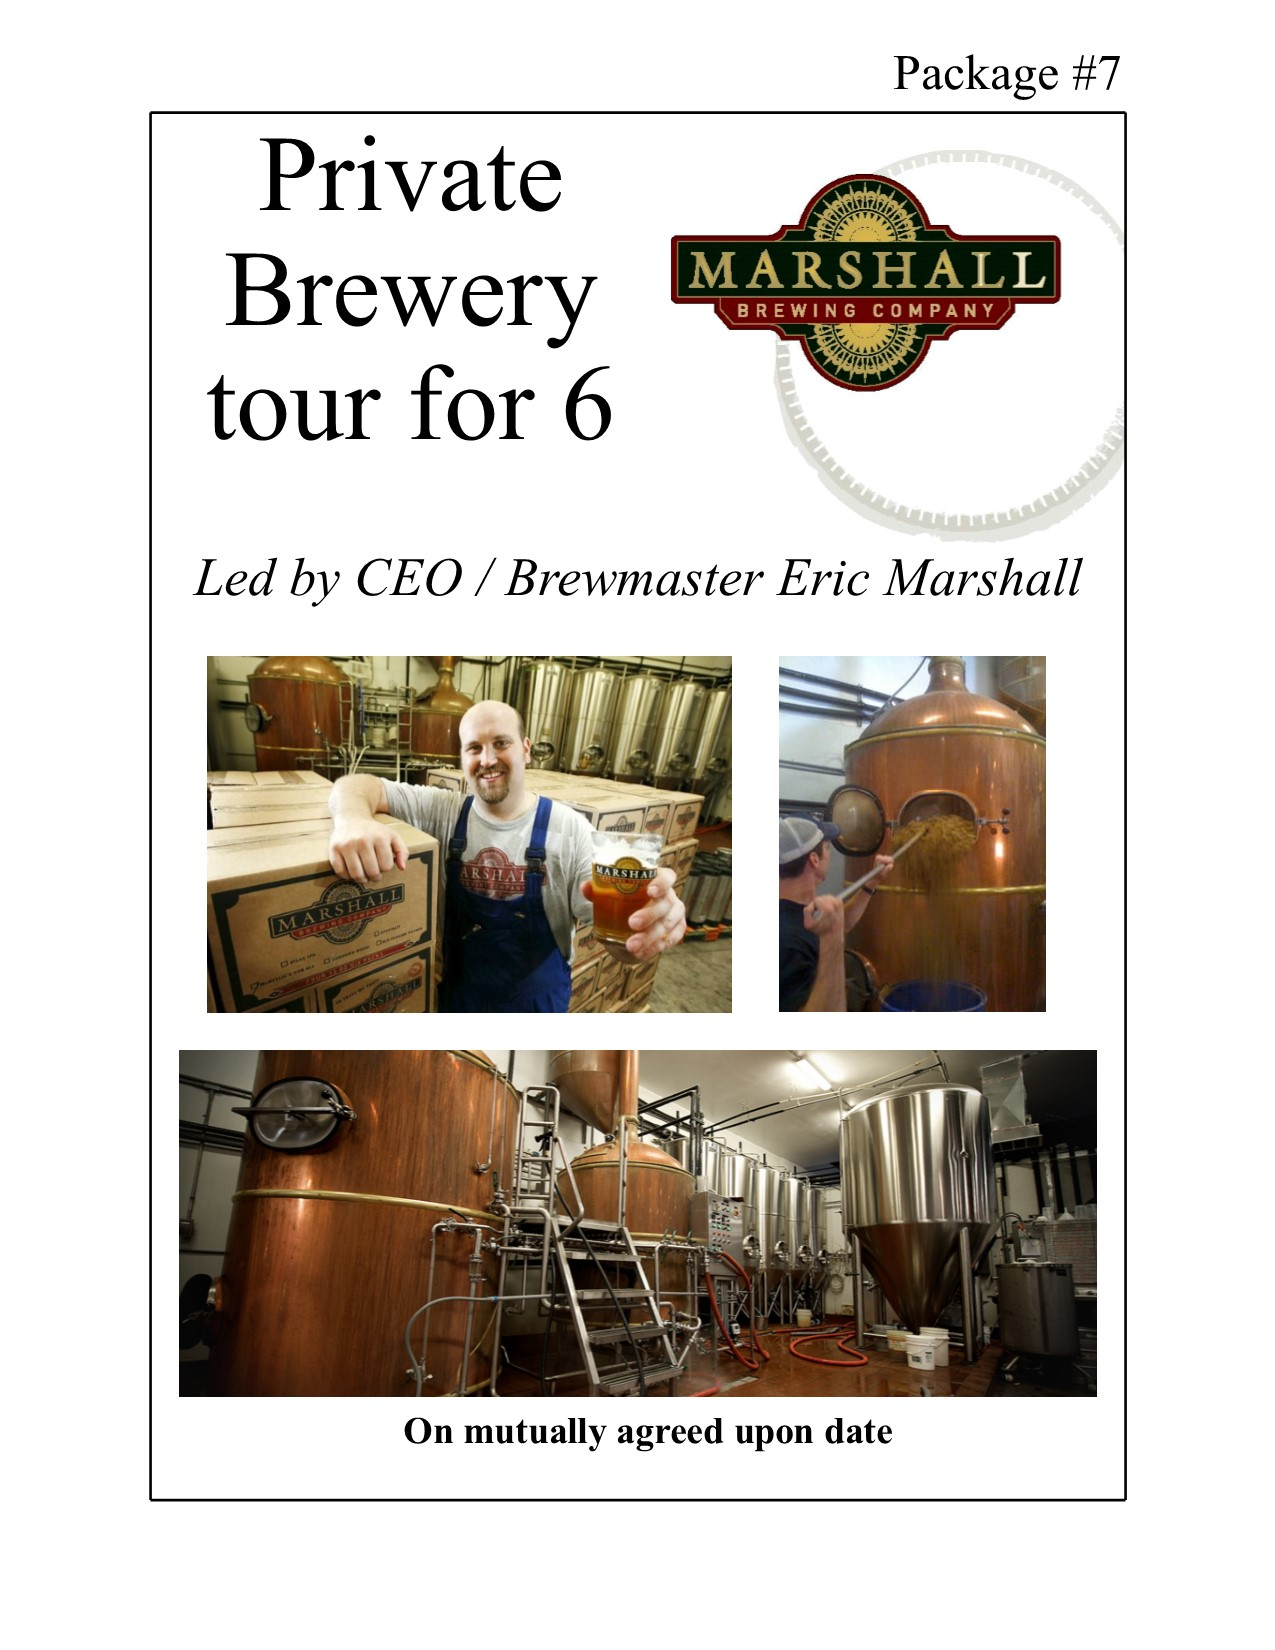 Marshall Brewing Company.jpg